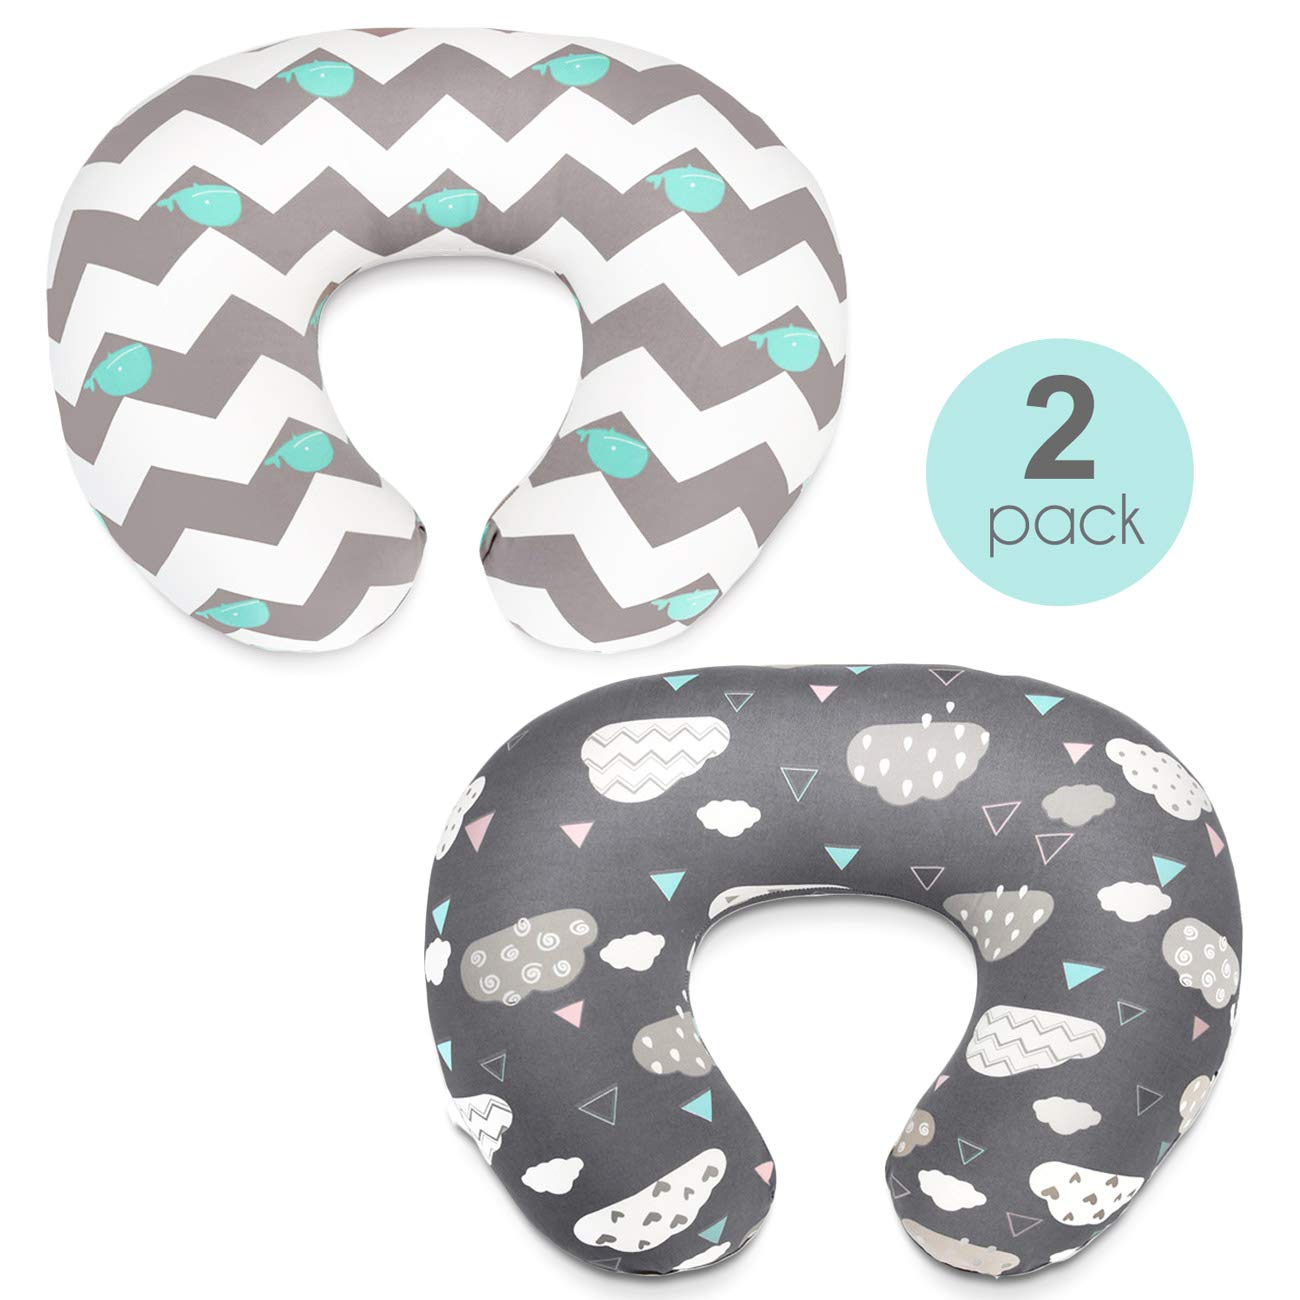 Cover Feeding Pillow Nursing Maternity Naby Pregnancy Breasteeding Nursing Pillow Cover Slipcover Only Cover